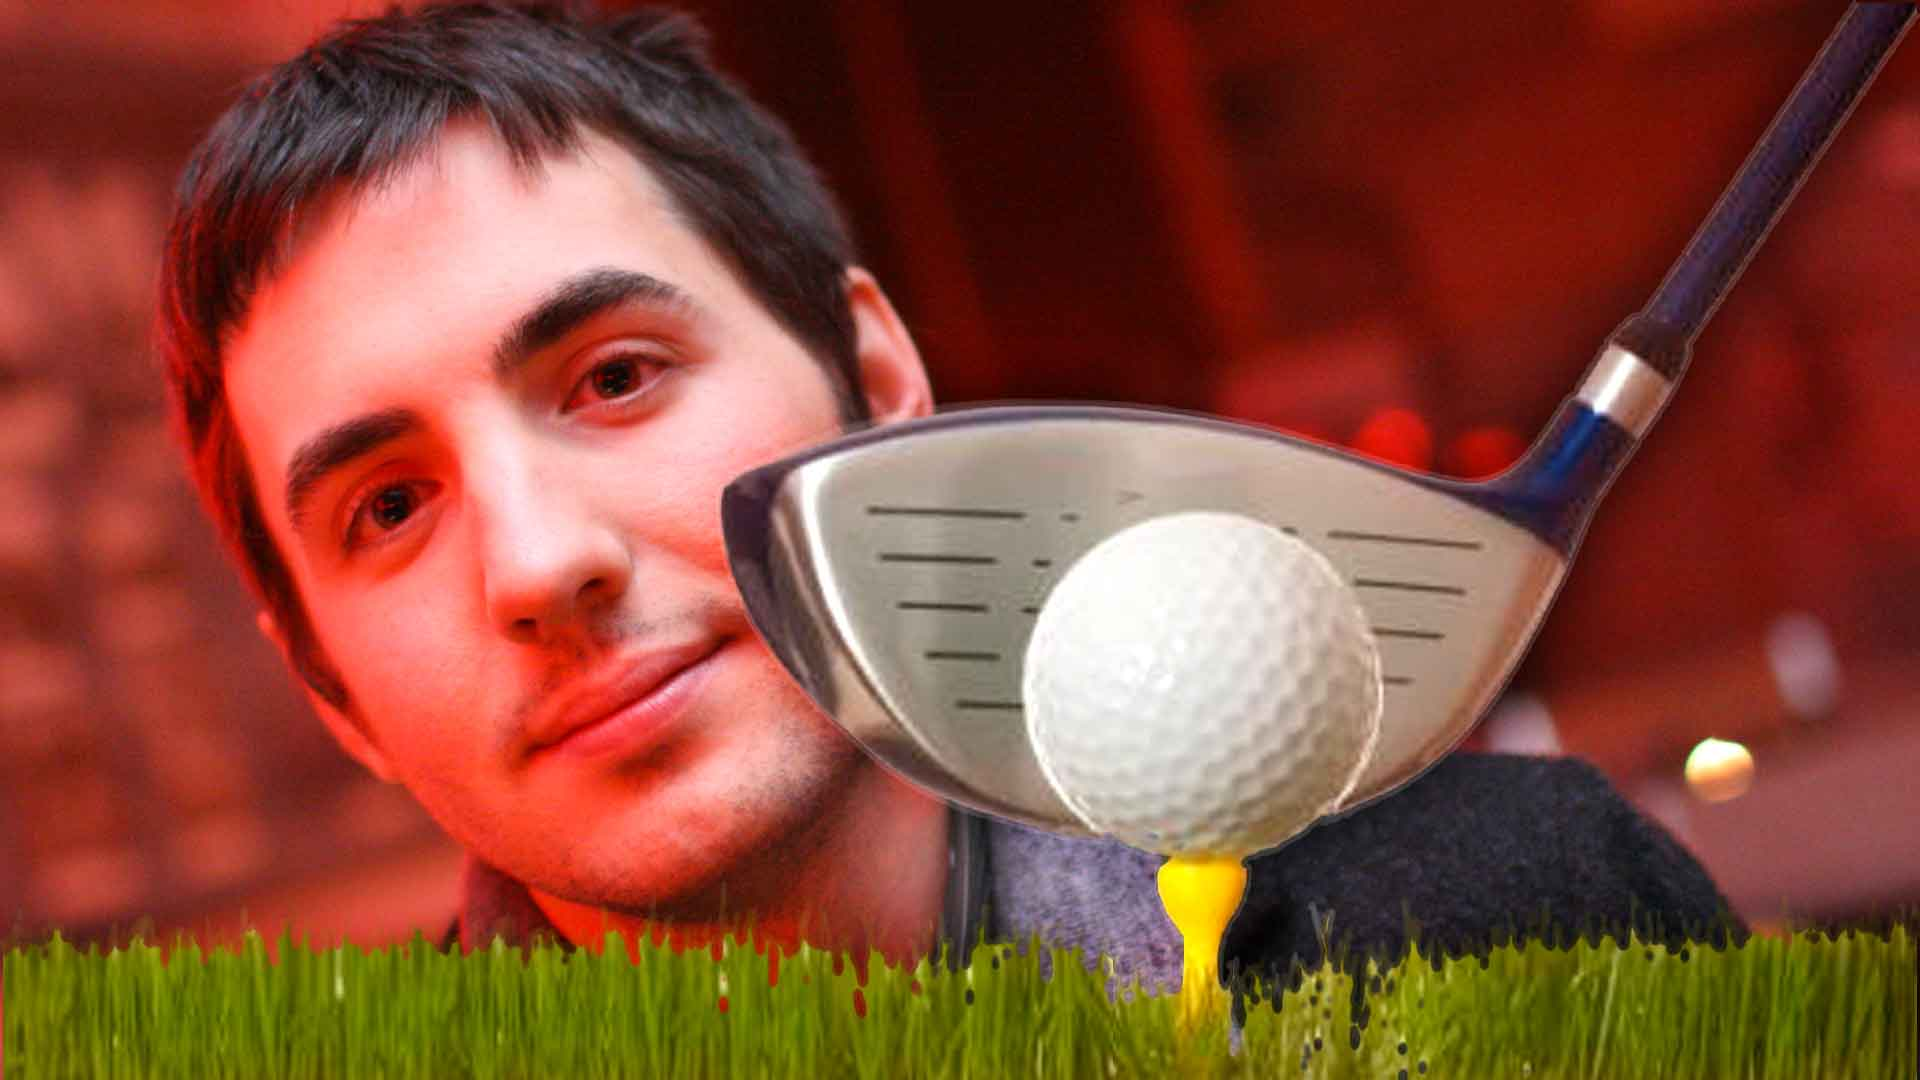 Ouch! Kevin Rose Drives A Golf Ball Into Diggnation Fan's Face